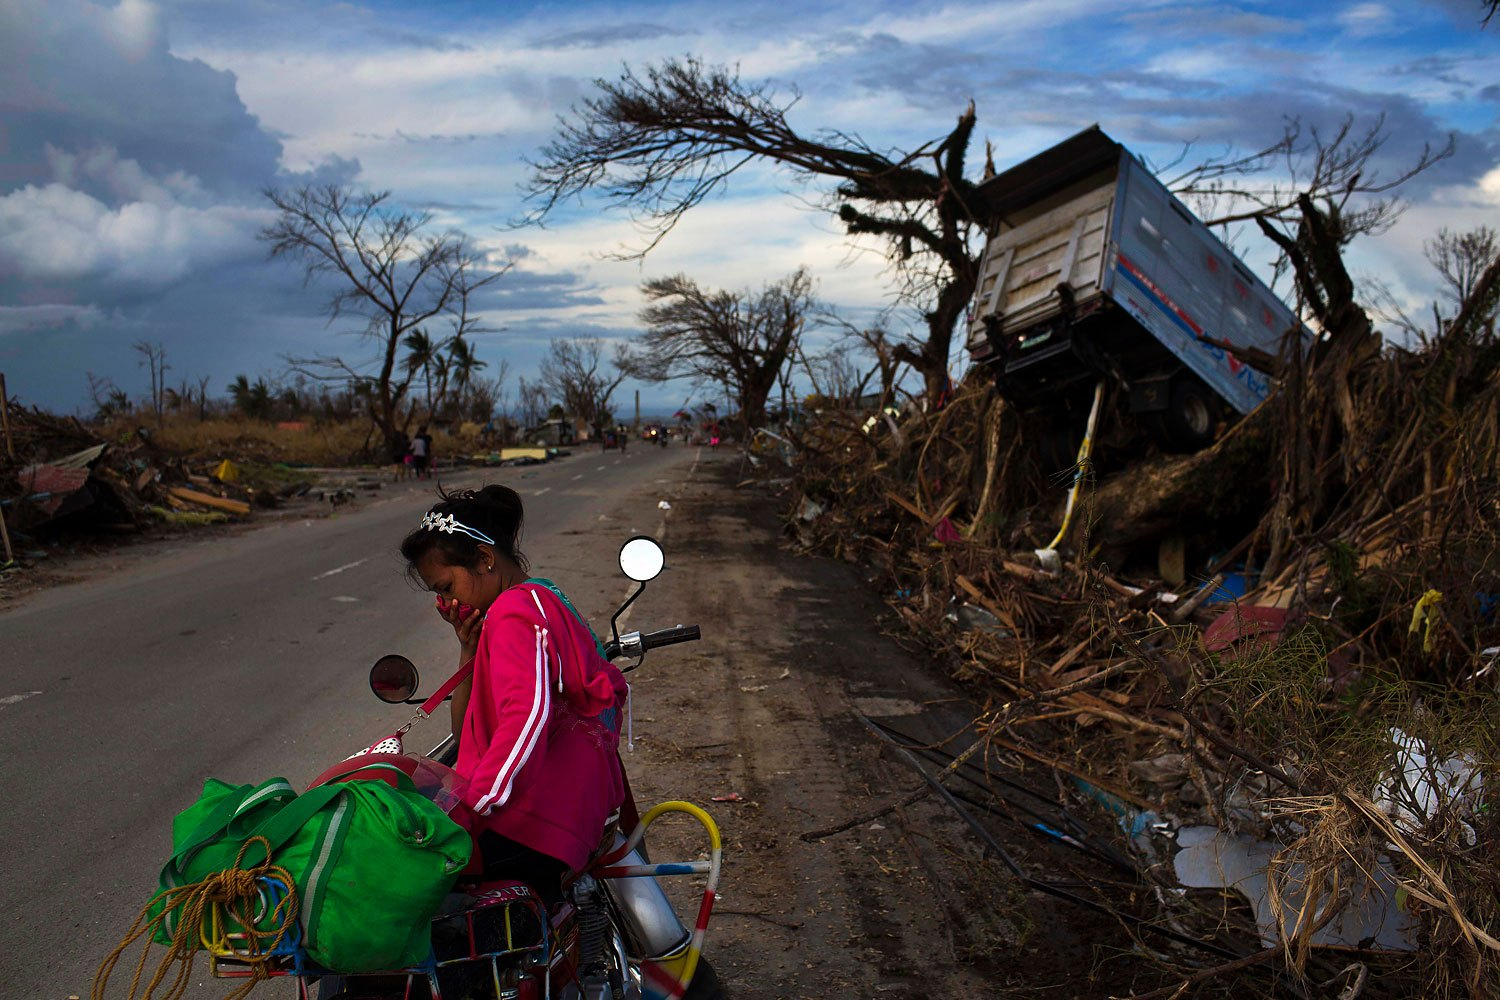 A woman rests on a roadside with her family's belongings near the Typhoon Haiyan ravaged town of Tacloban, Philippines on November 13, 2013.